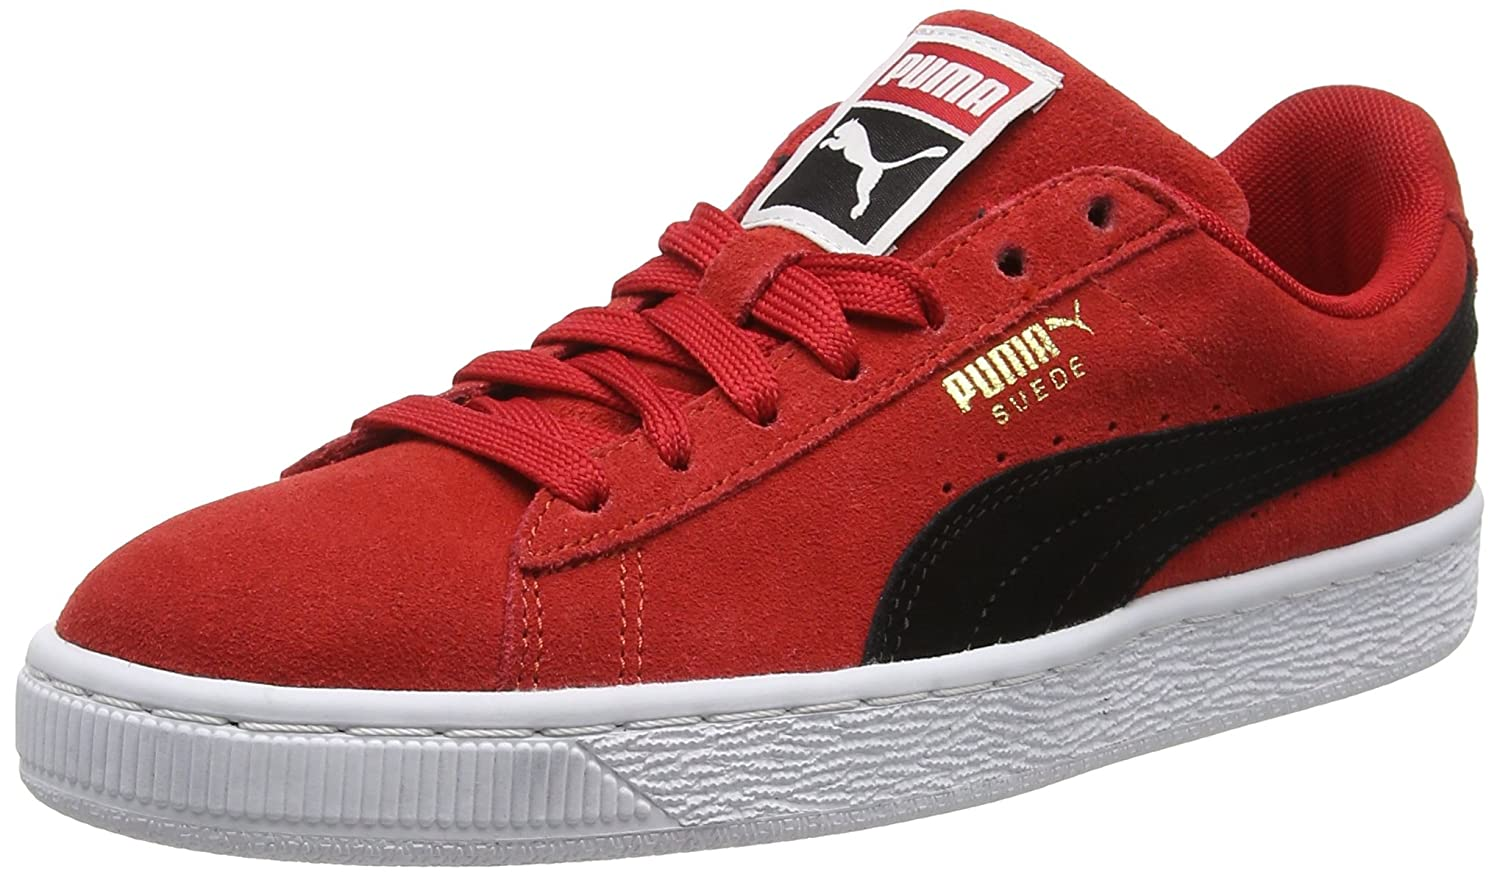 new style 98cc6 f873b Amazon.com | Puma Suede Classic Low-Top Sneakers, Ribbon Red ...